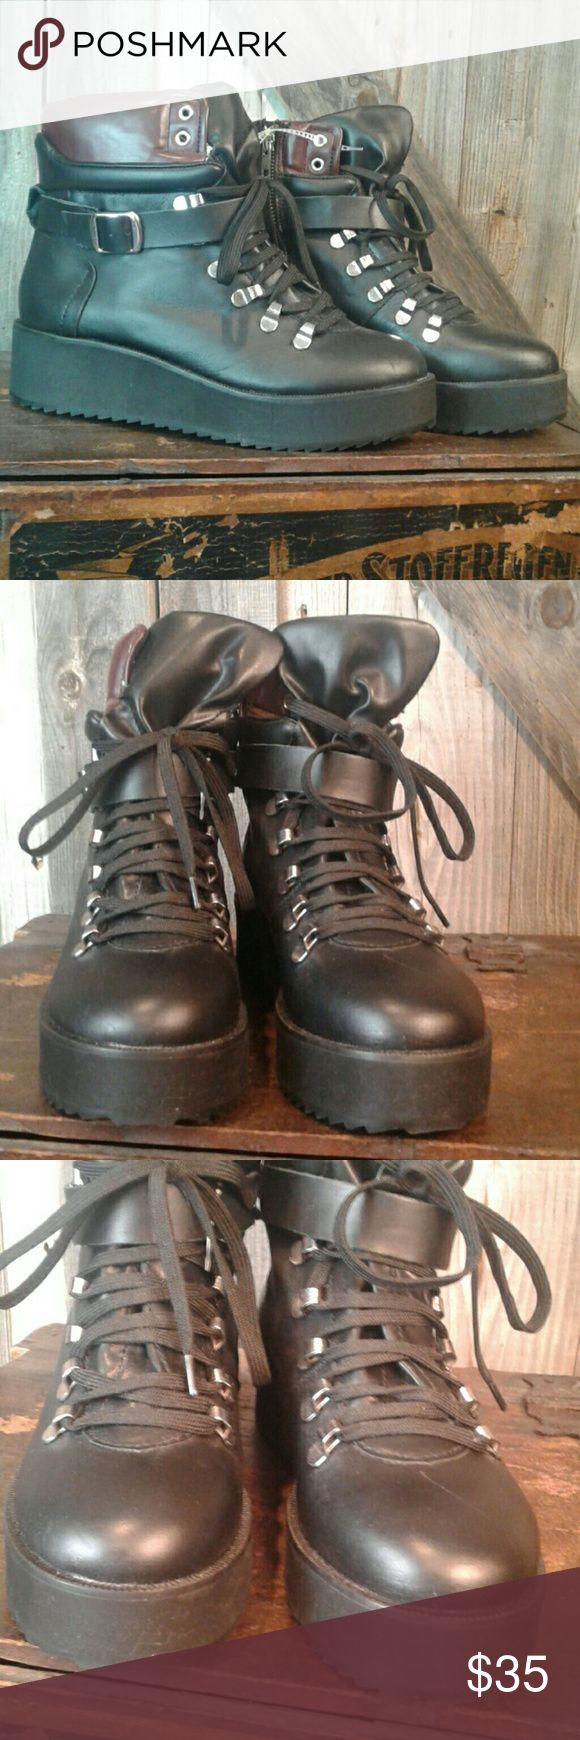 Steve Madden black  hiking boots 7.5 New without box has been tried on and handle in a retail inviorment leather upper manmade outsole Steve Madden Shoes Combat & Moto Boots